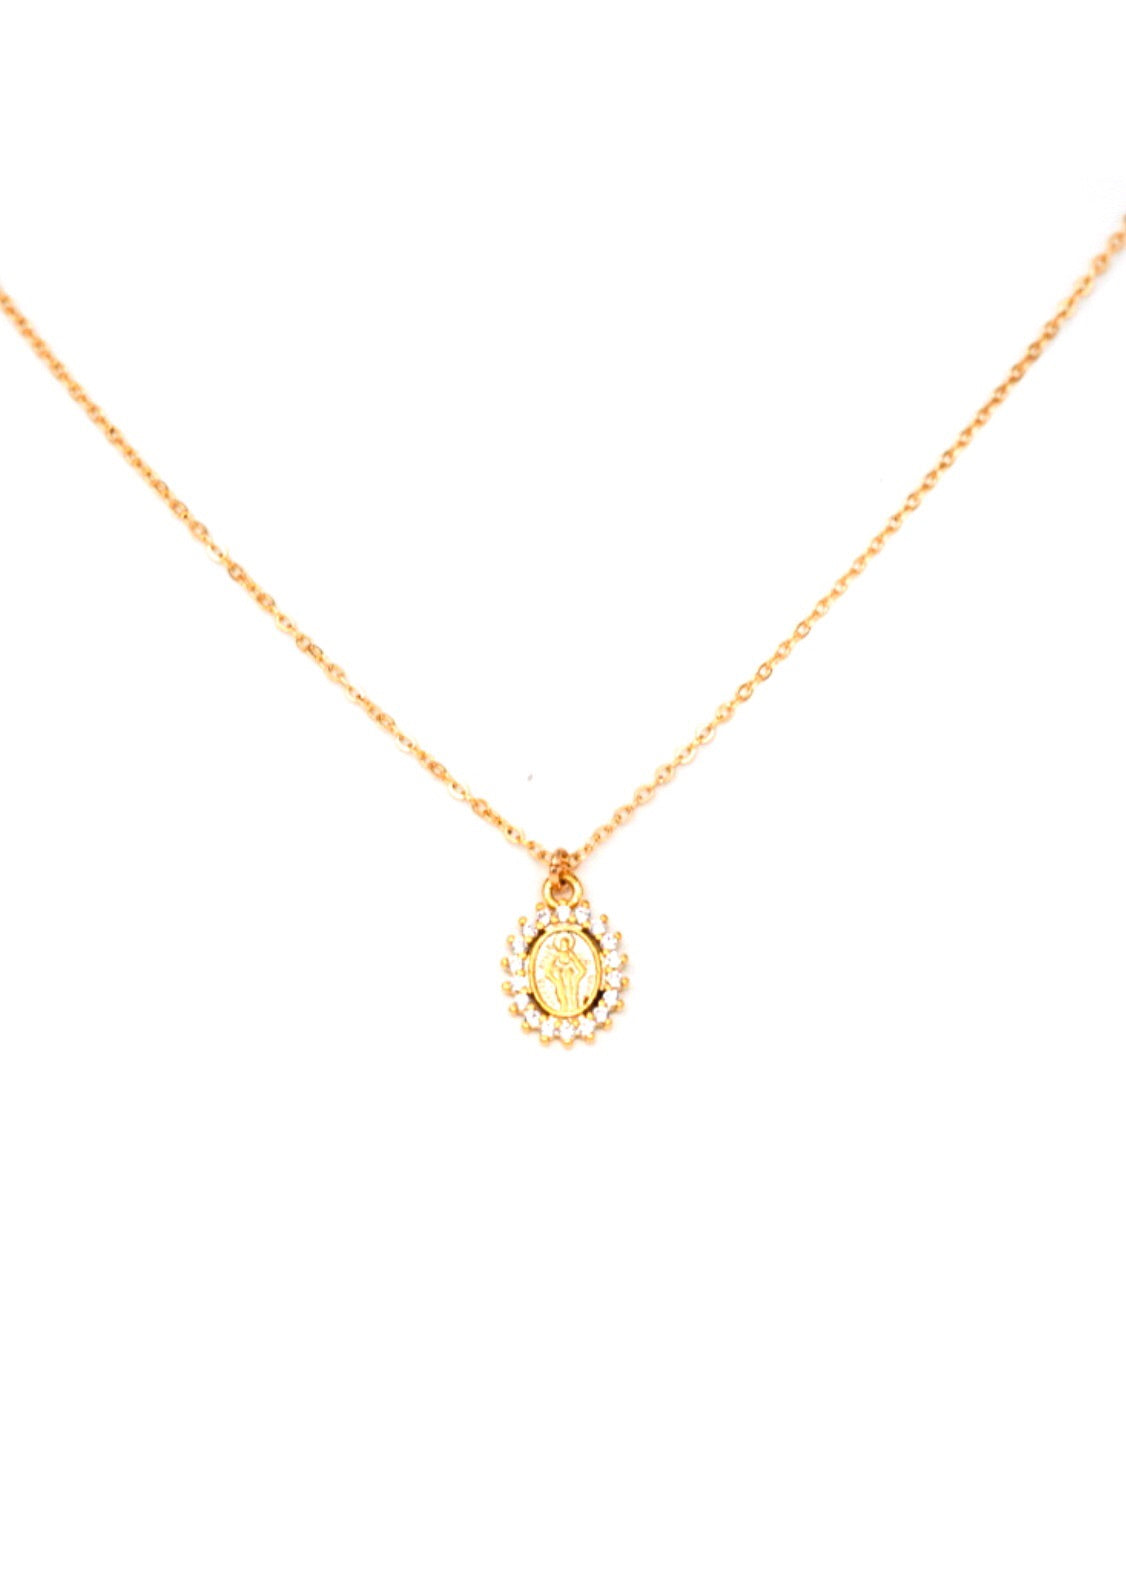 CZ Virgin Marty gold filled necklace by May Martin 1